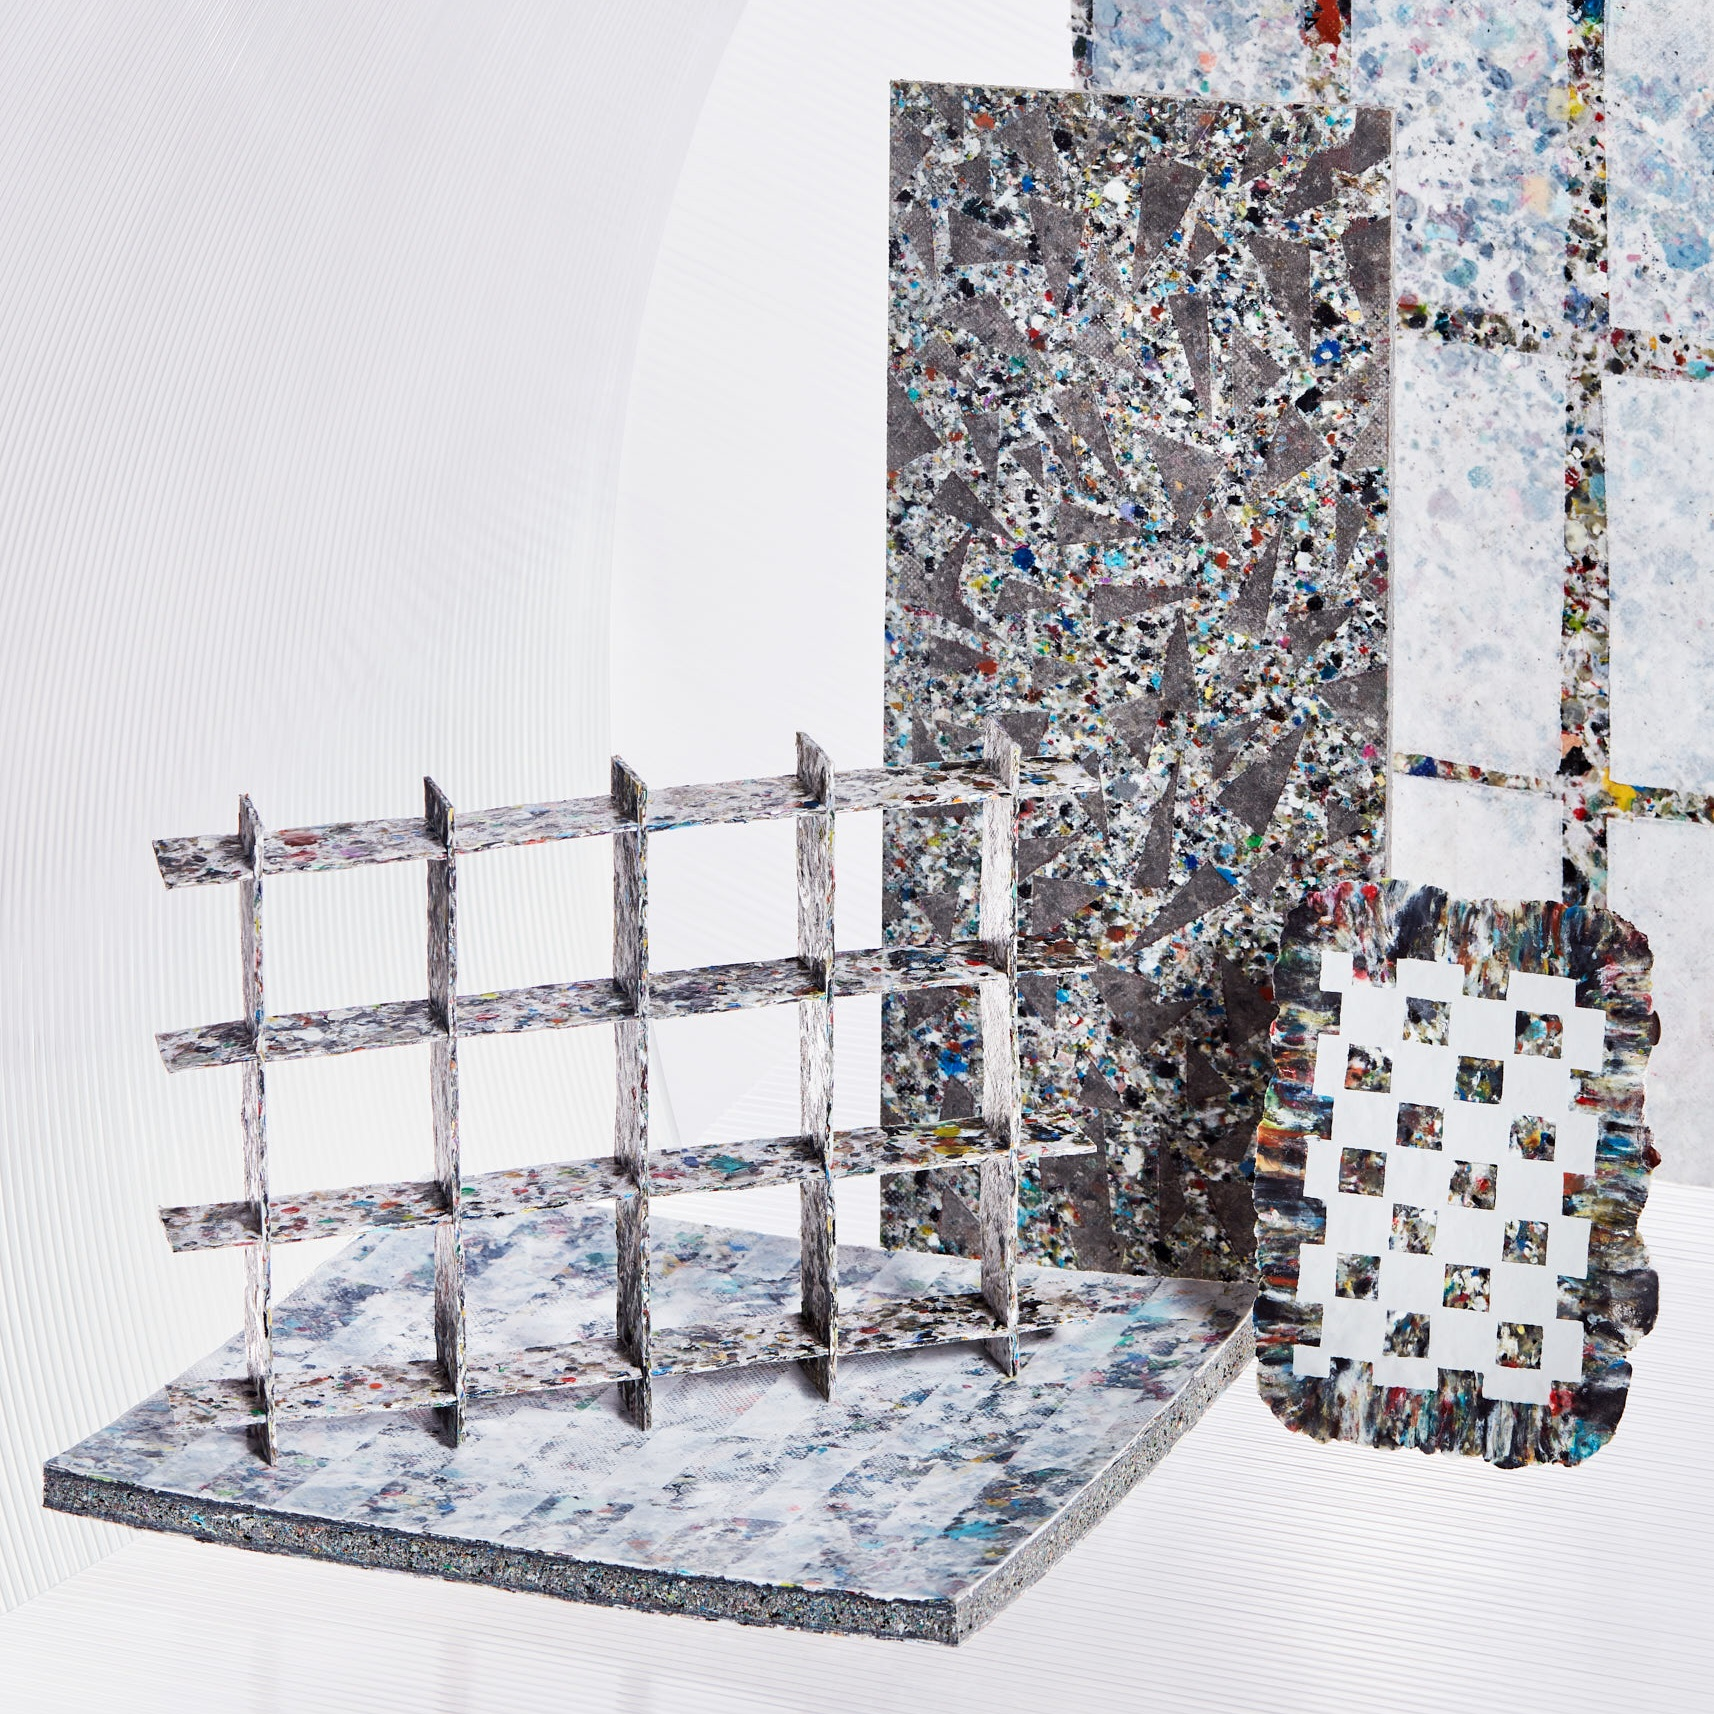 envisions-ECO-oh!-recycled plastics in process-photography-Ronald Smits-12.jpg